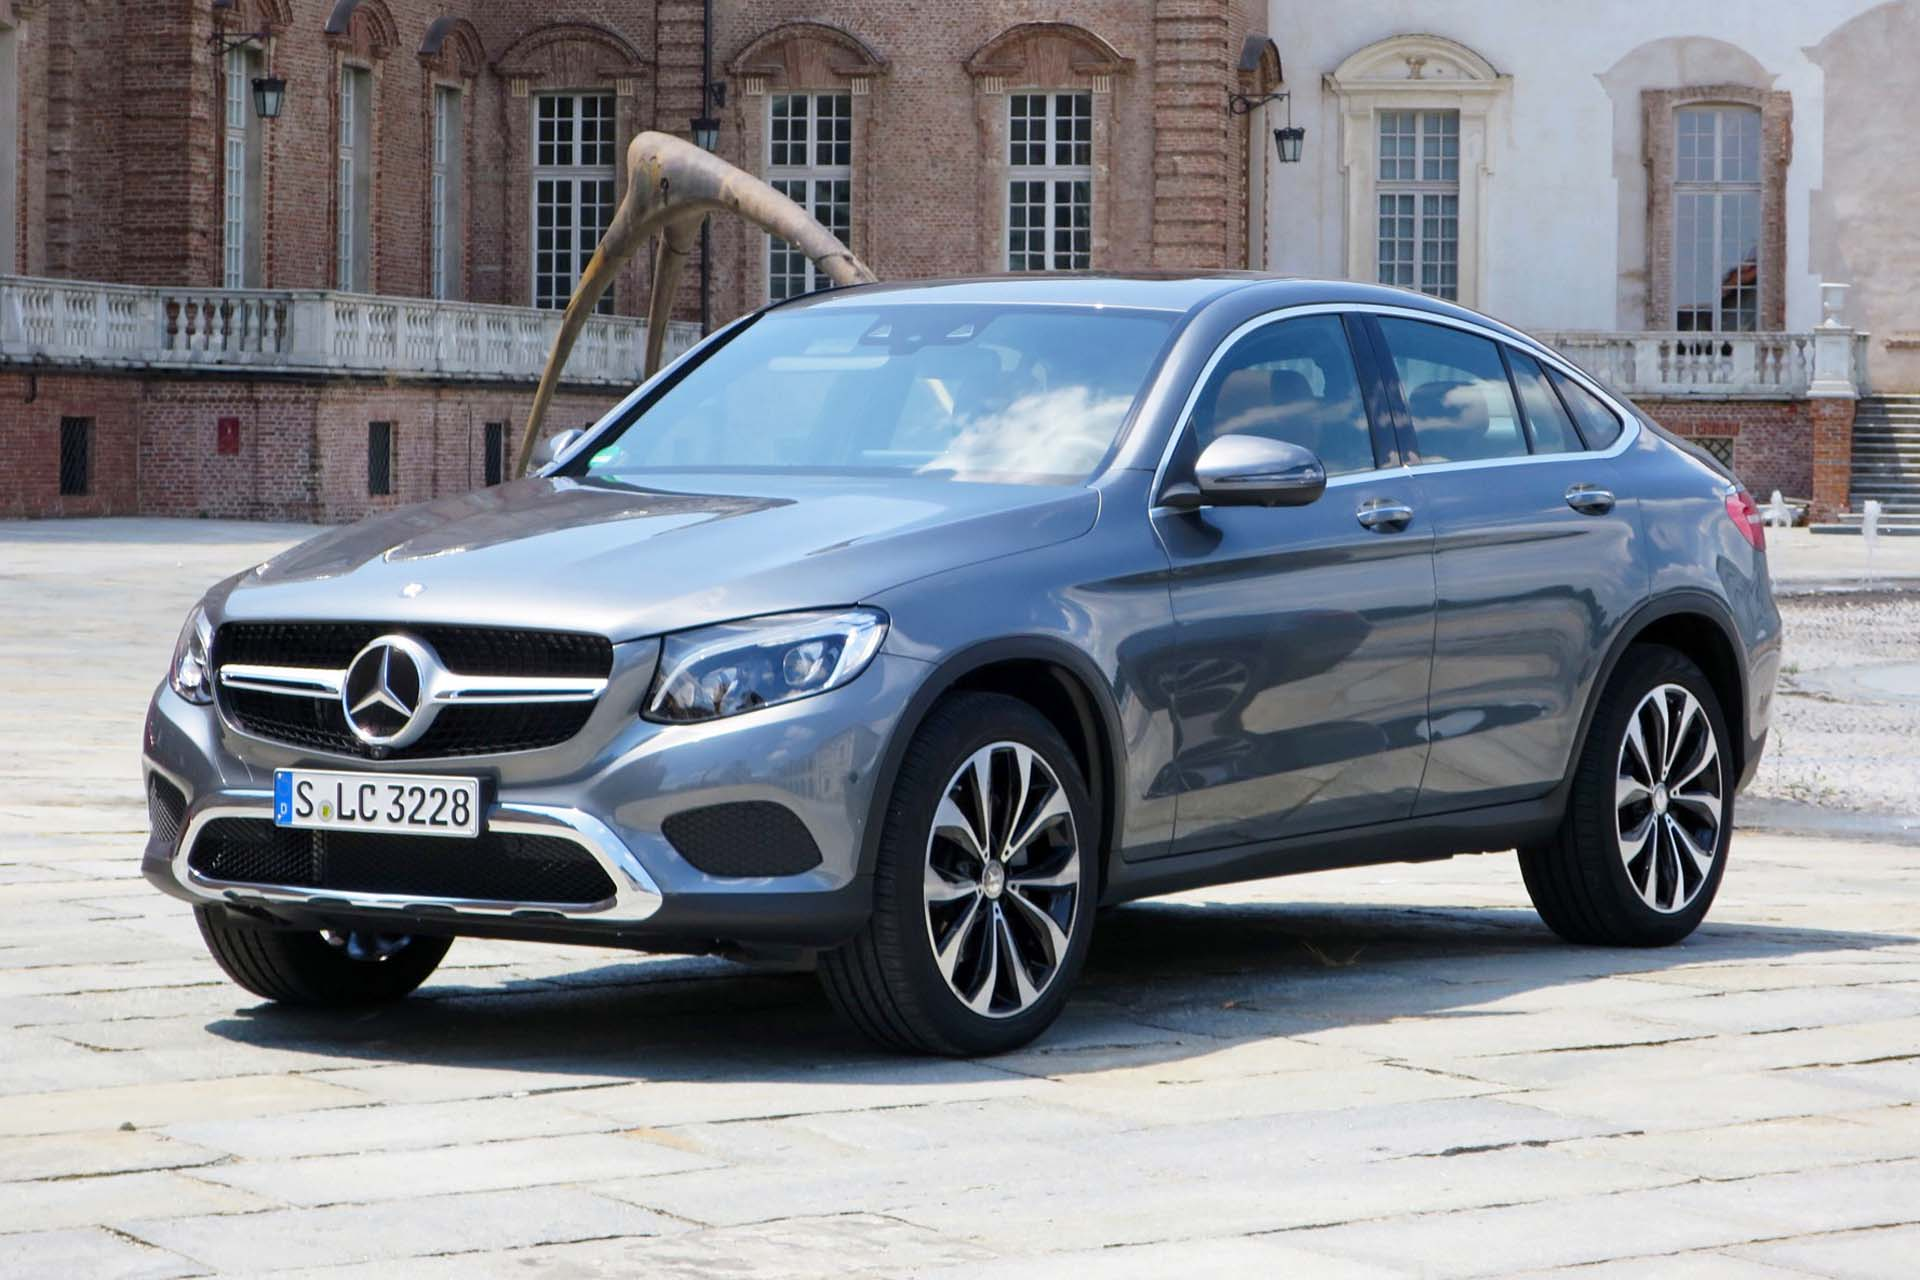 2017 mercedes benz glc 300 4matic coupe for Mercedes benz glc300 coupe